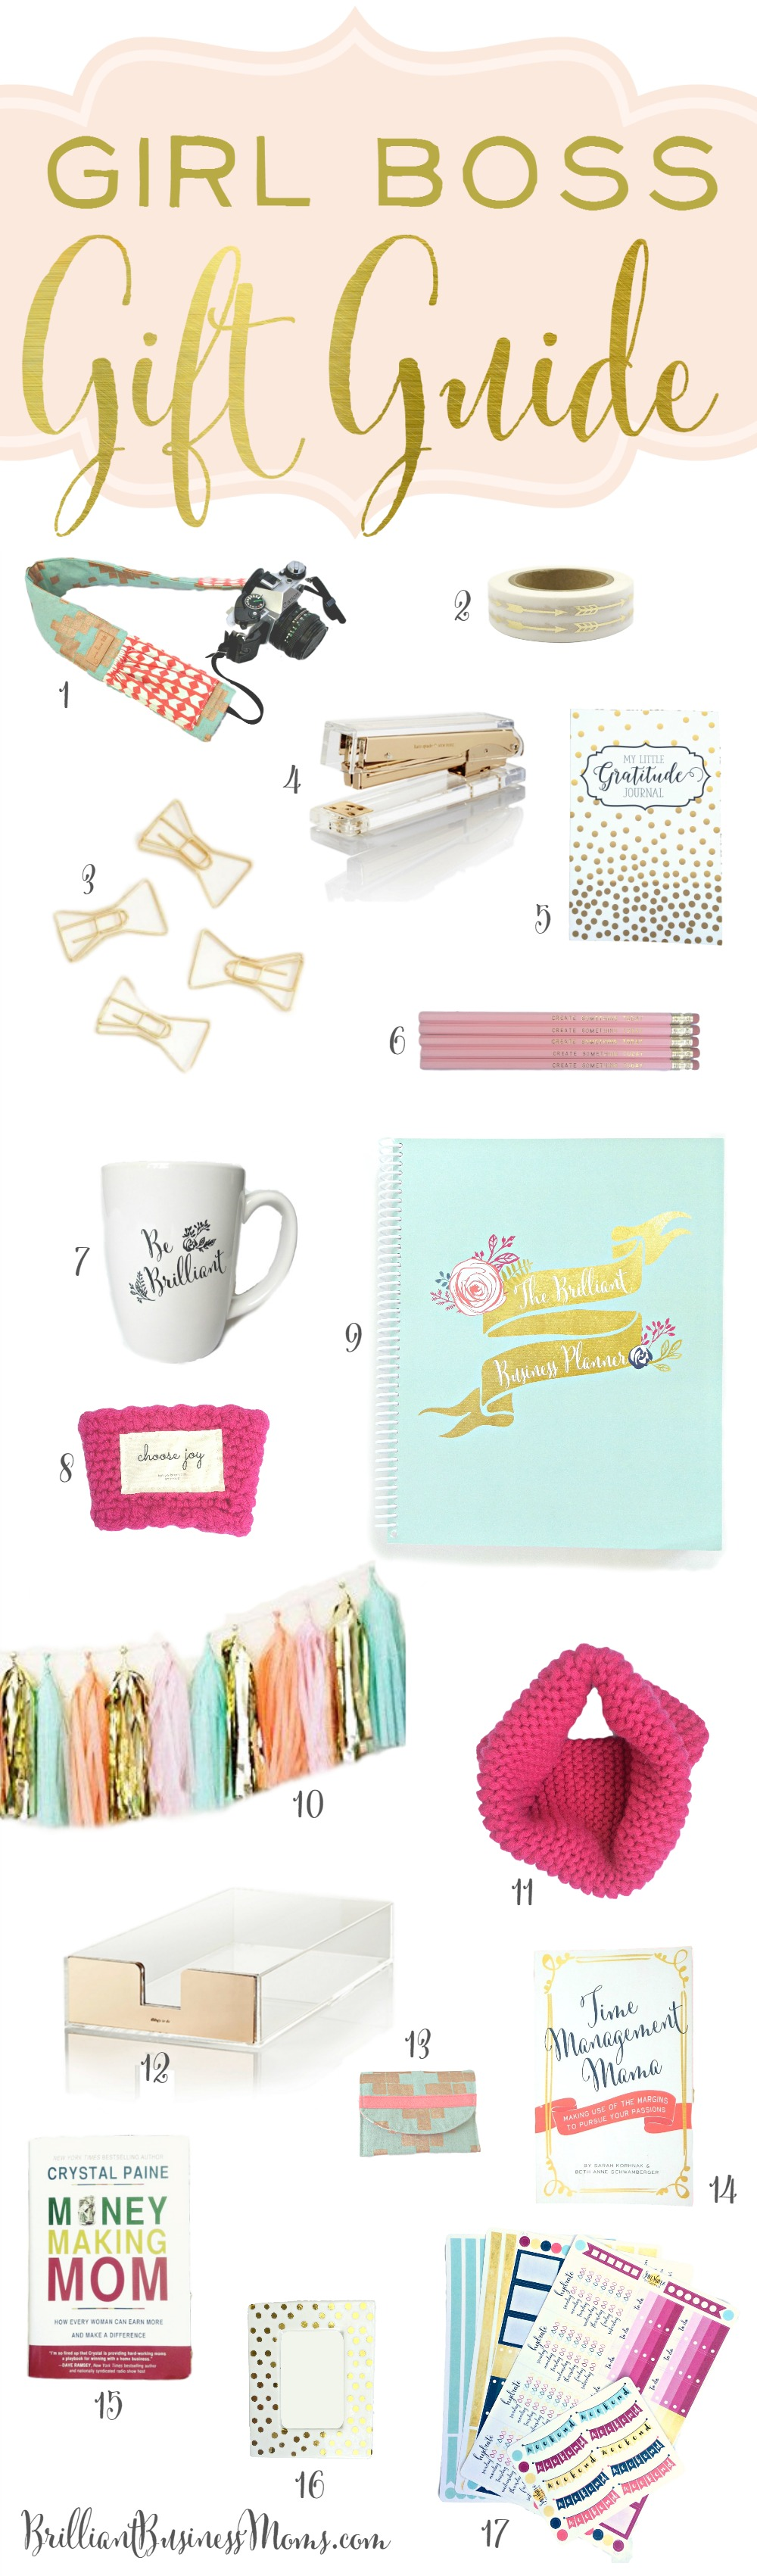 Boss Gift Guide For Christmas 2017 Plus A Giveaway Great Ideas Entrepreneurs